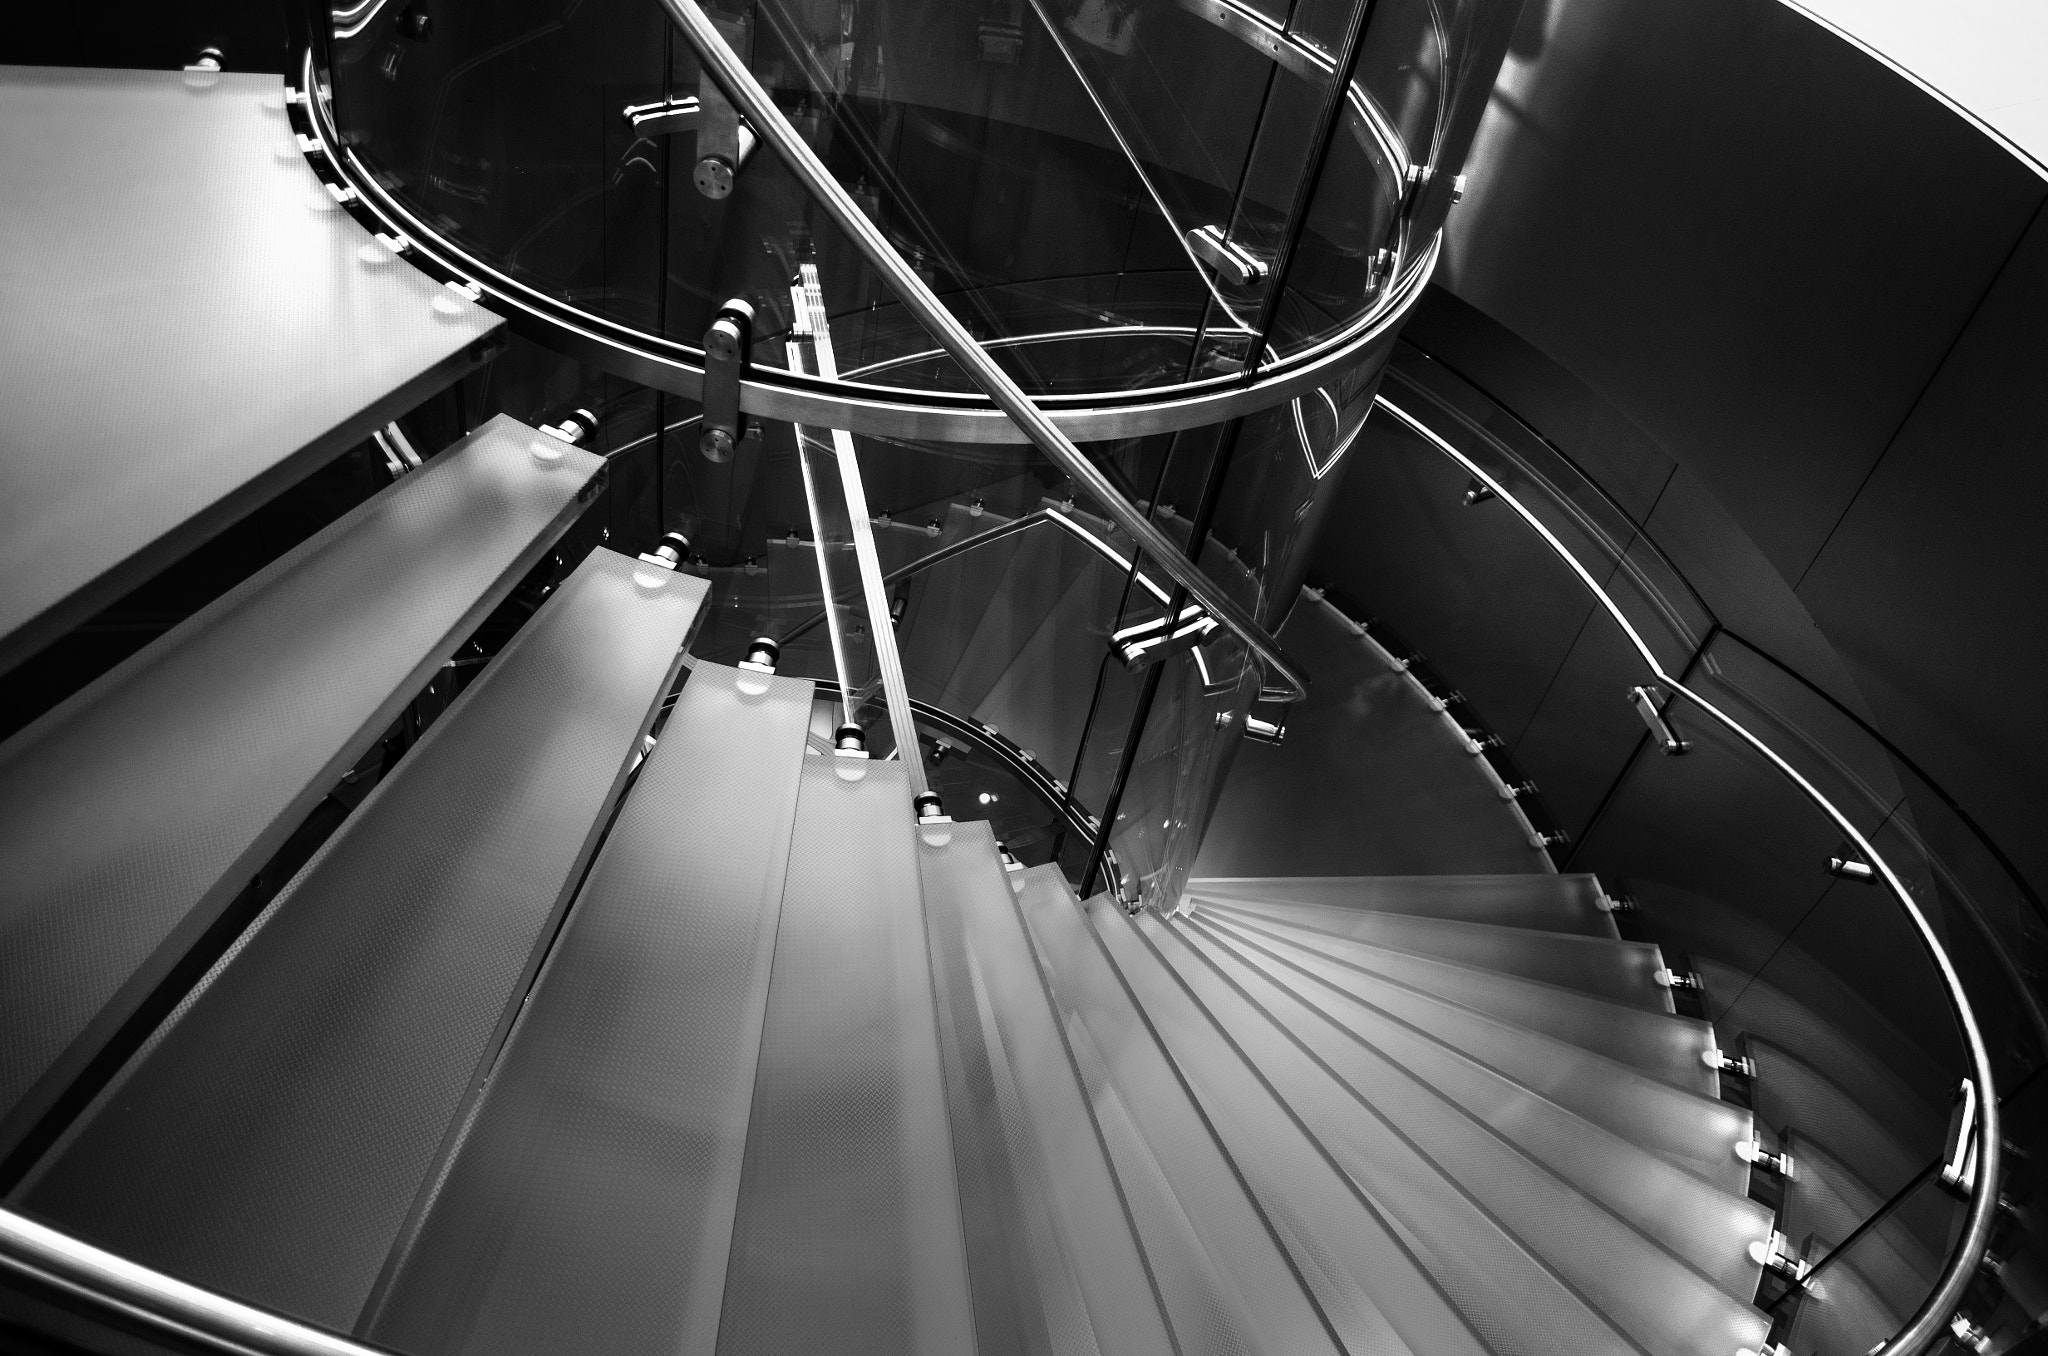 Photograph The Apple Store Glasses Stairs by Soleil Neon on 500px